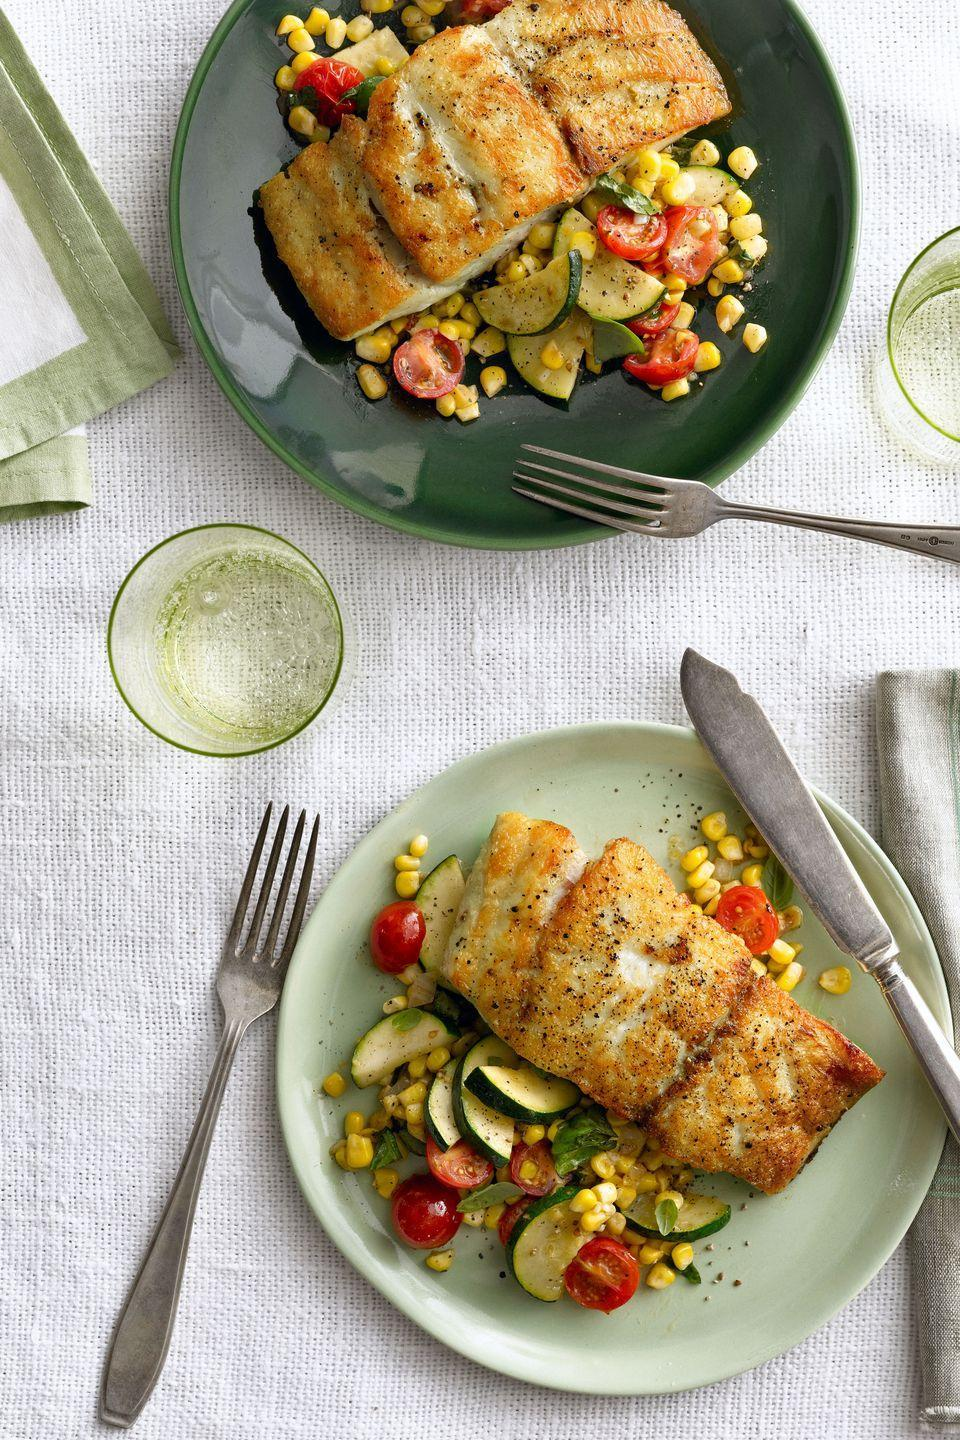 """<p>This light and refreshing dinner gets some color from a vegetable sauté.</p><p><strong><a href=""""https://www.countryliving.com/food-drinks/recipes/a5629/seared-grouper-corn-zucchini-tomato-saute-recipe-clx0914/"""" rel=""""nofollow noopener"""" target=""""_blank"""" data-ylk=""""slk:Get the recipe"""" class=""""link rapid-noclick-resp"""">Get the recipe</a>.</strong></p>"""